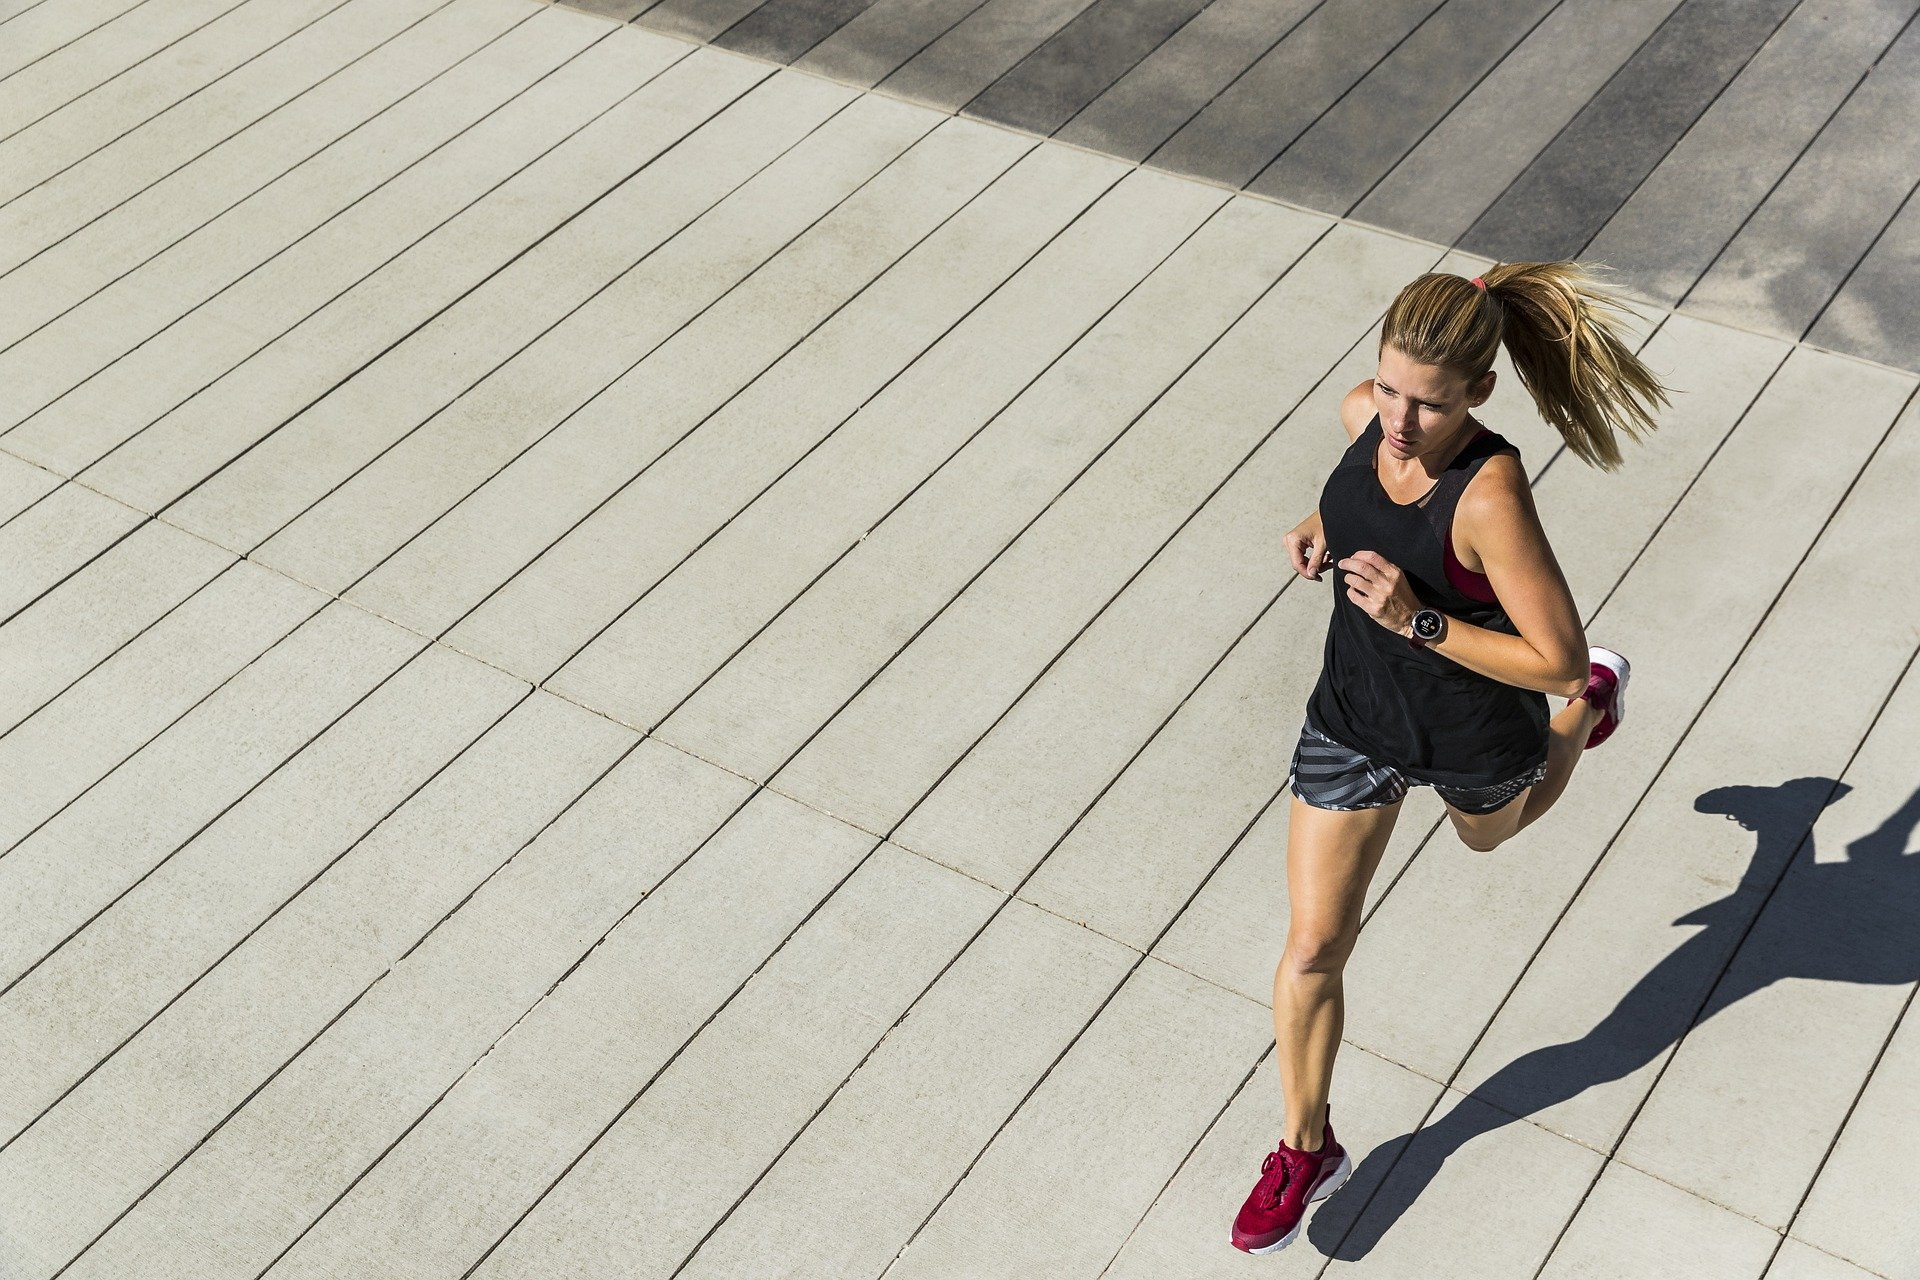 Top Outdoor Workouts That Don't Require Any Weight Lifting Equipment